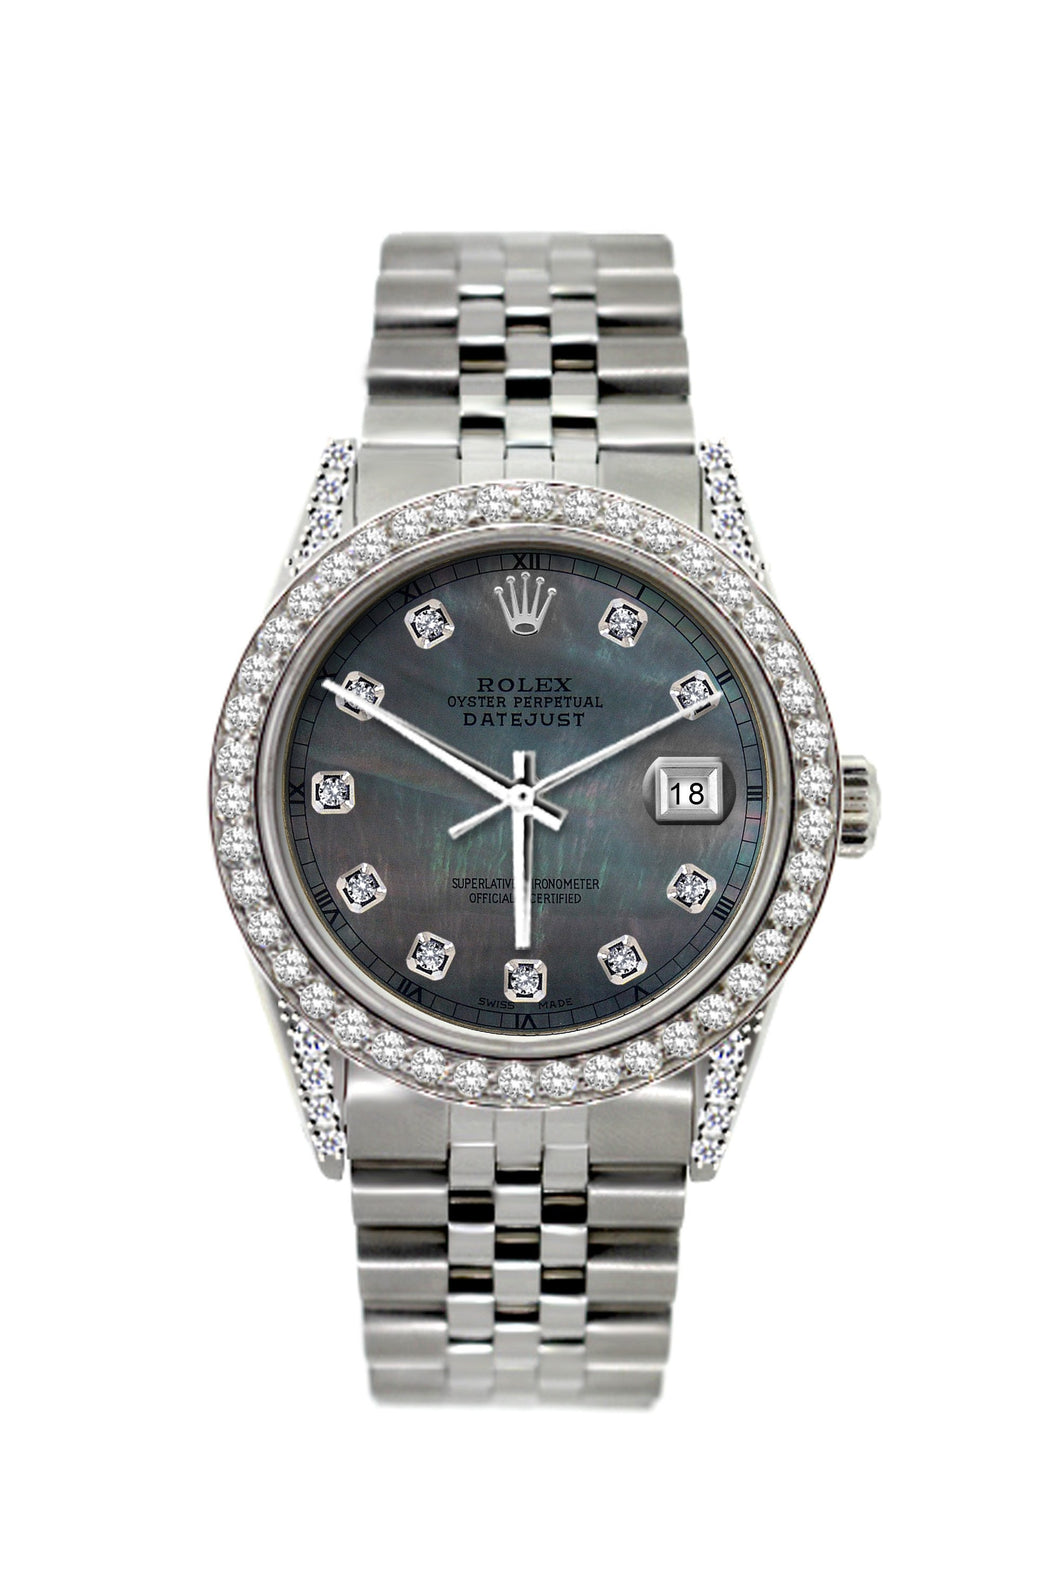 Rolex Datejust 36mm Stainless Steel Black Mother of Pearl Dial w/ Diamond Bezel and Lugs